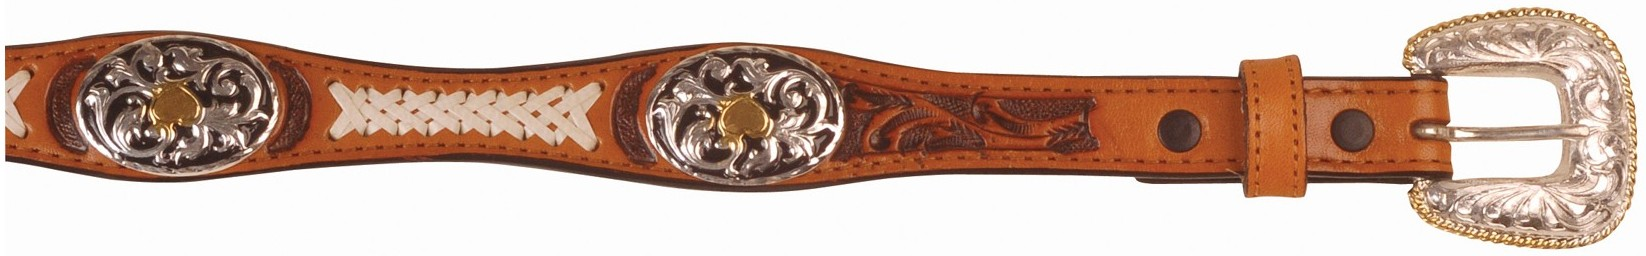 Western Belt Ladies